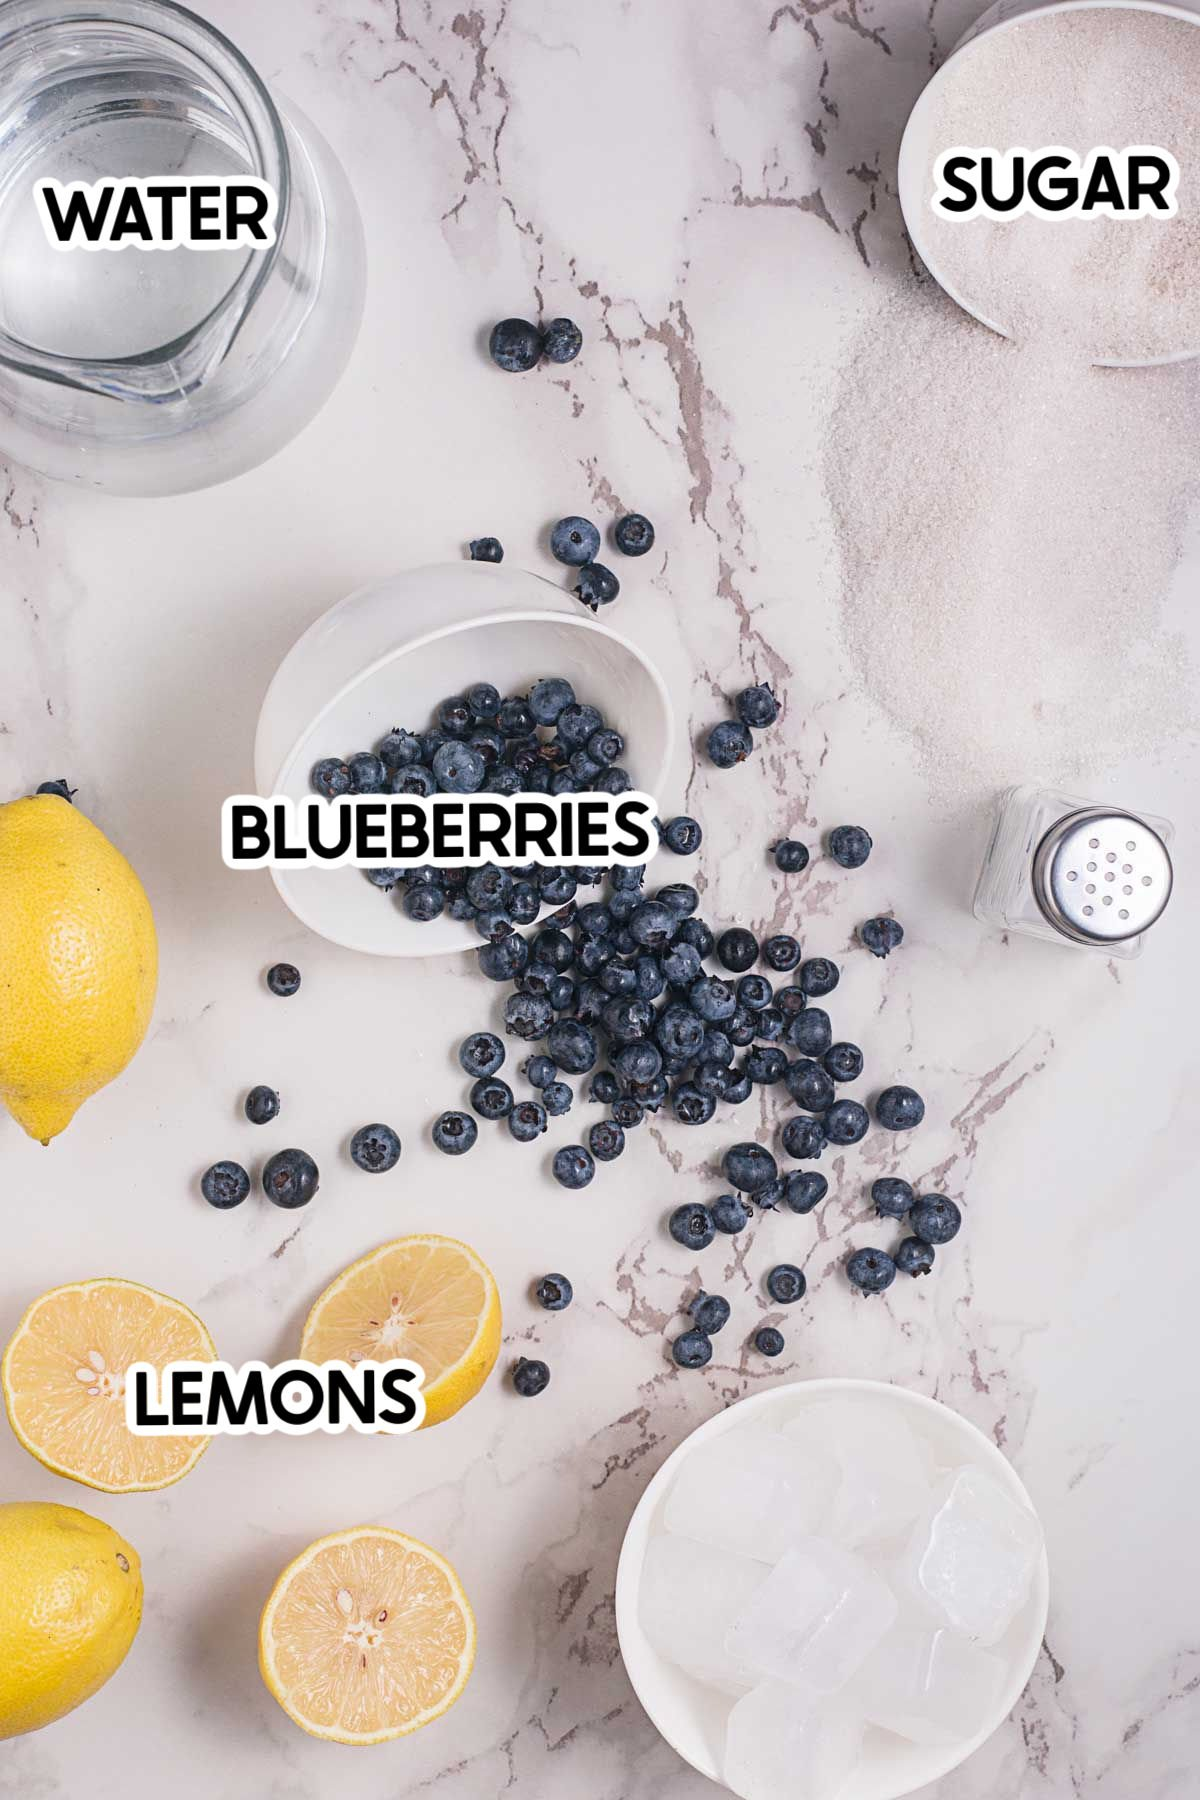 ingredients for blueberry lemonade with labels